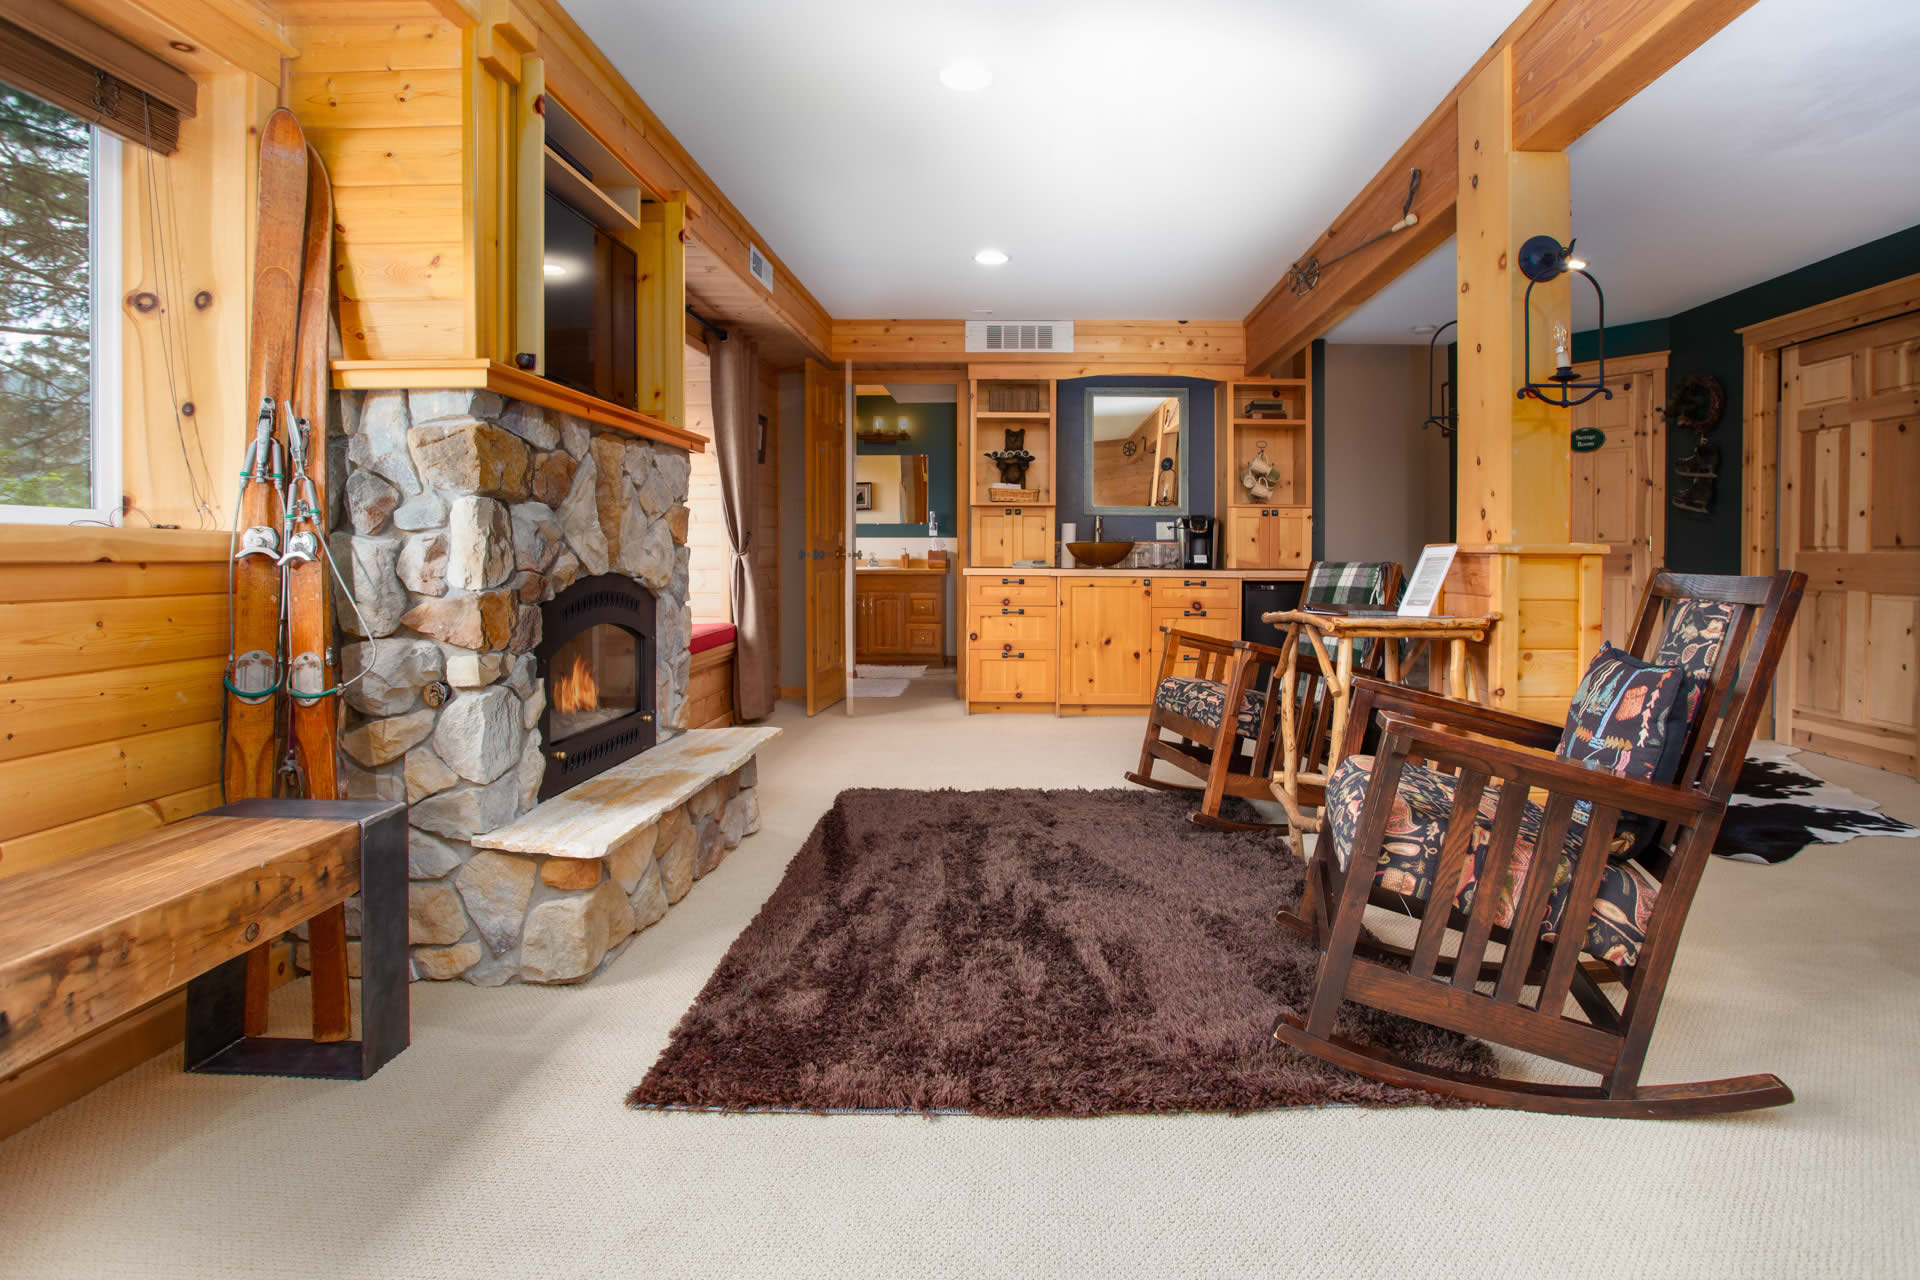 leavenworth wa vacation rental on river - living room with fireplace, rockers, and view.